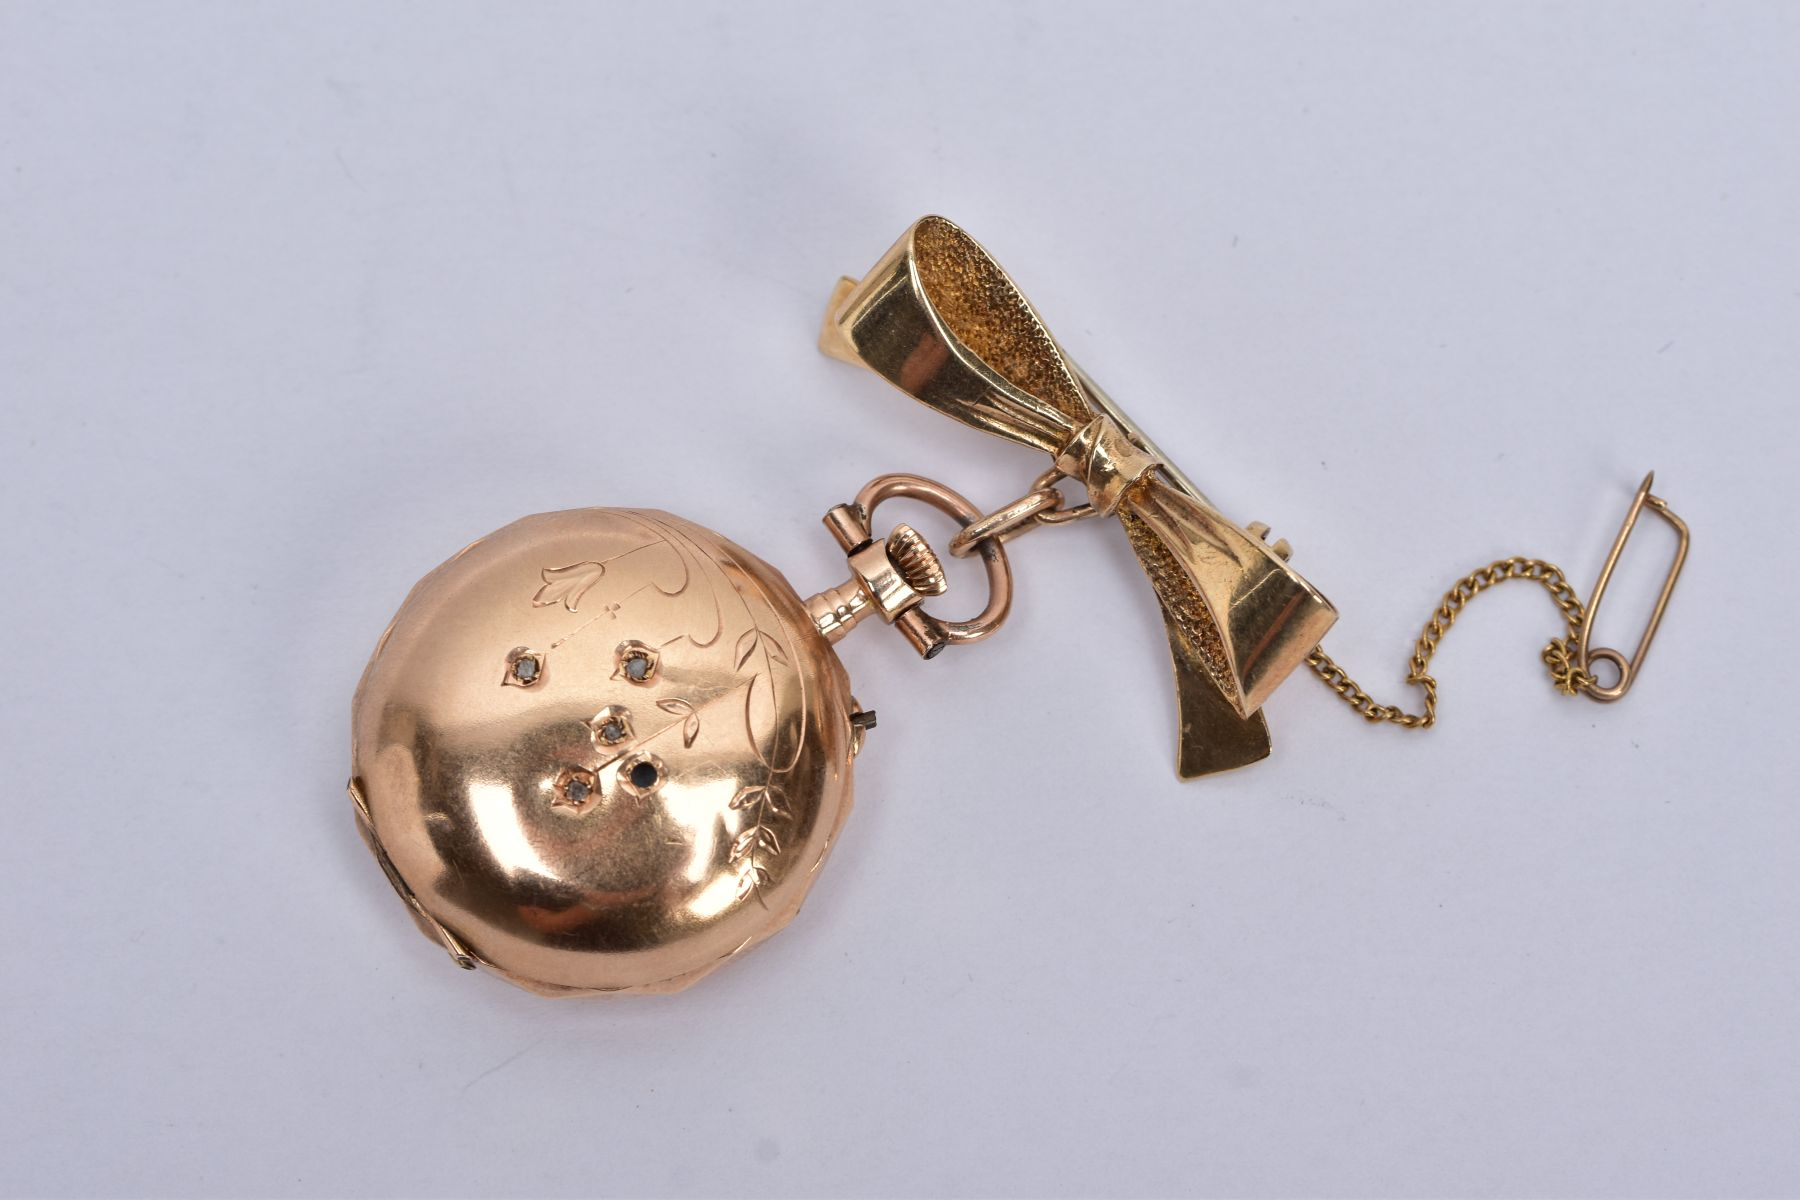 AN EARLY 20TH CENTURY GOLD AND DIAMOND LADY'S FOB WATCH, white enamel dial signed 'Elba', case